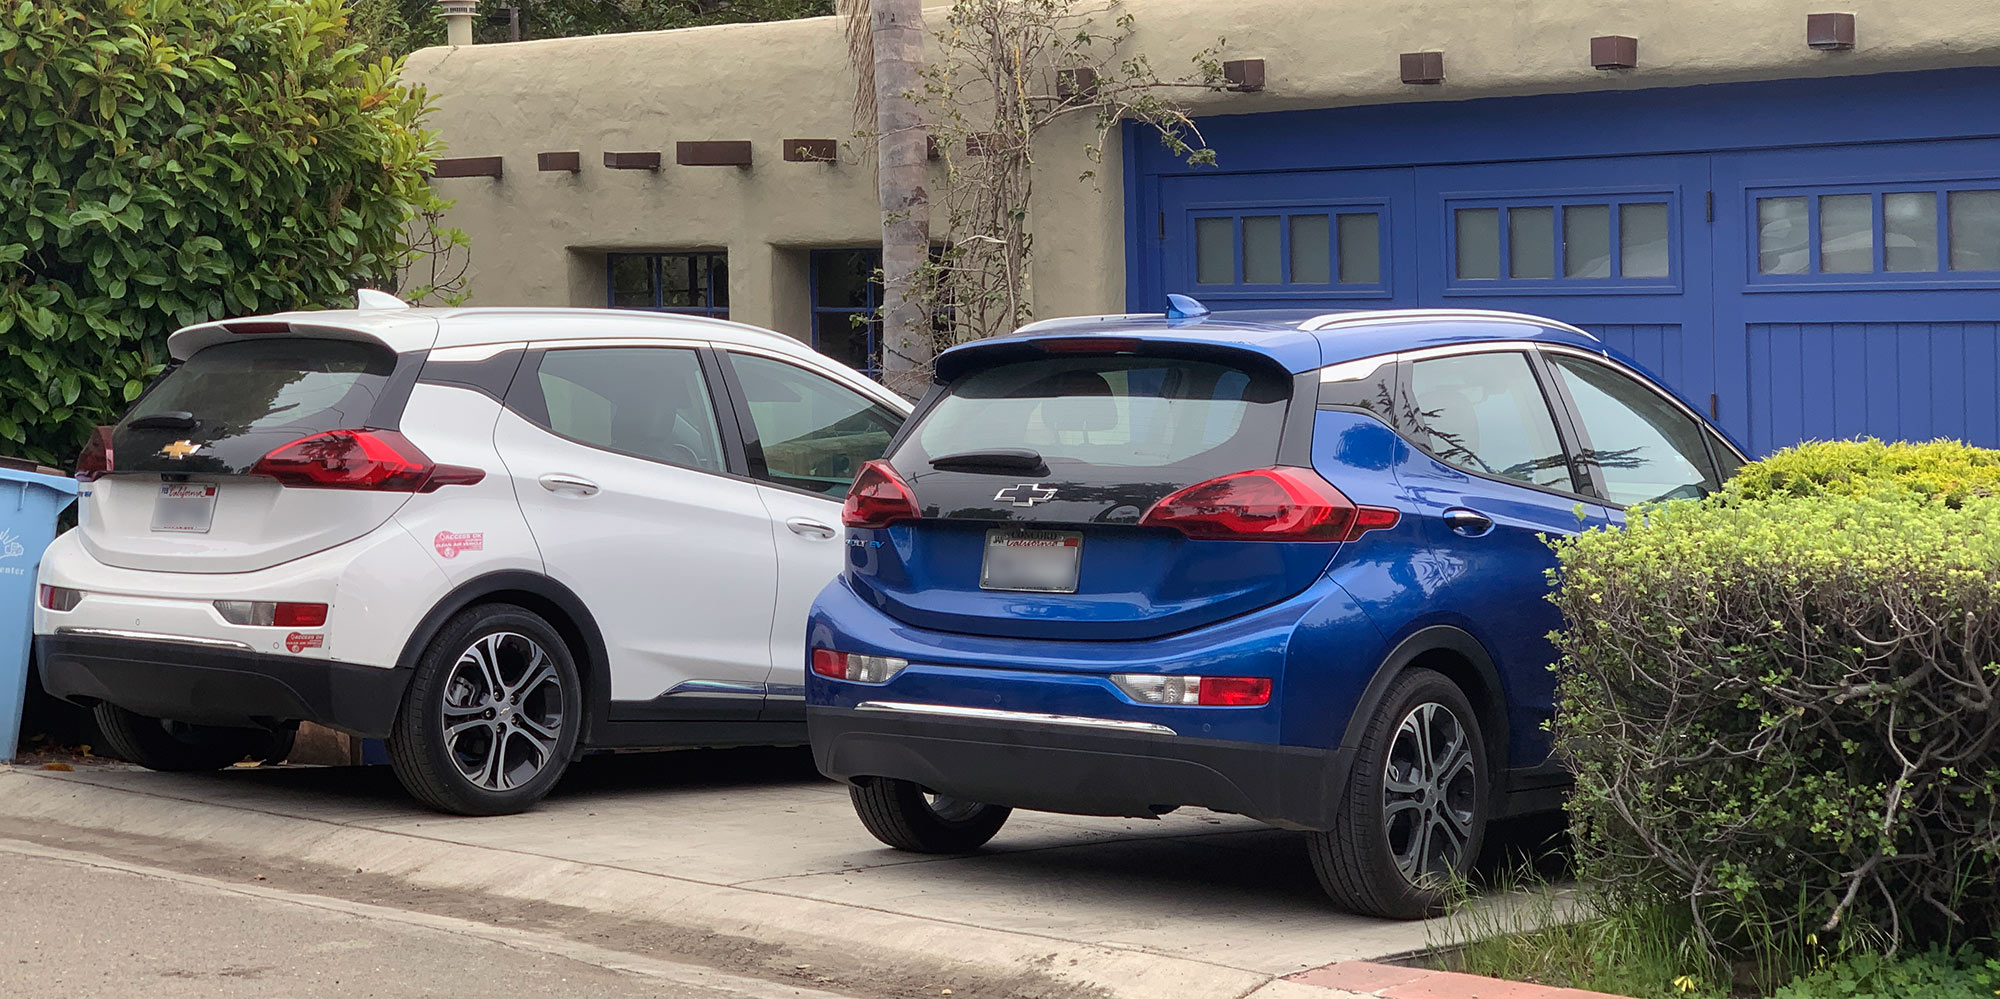 Two Chevy Bolts in the driveway